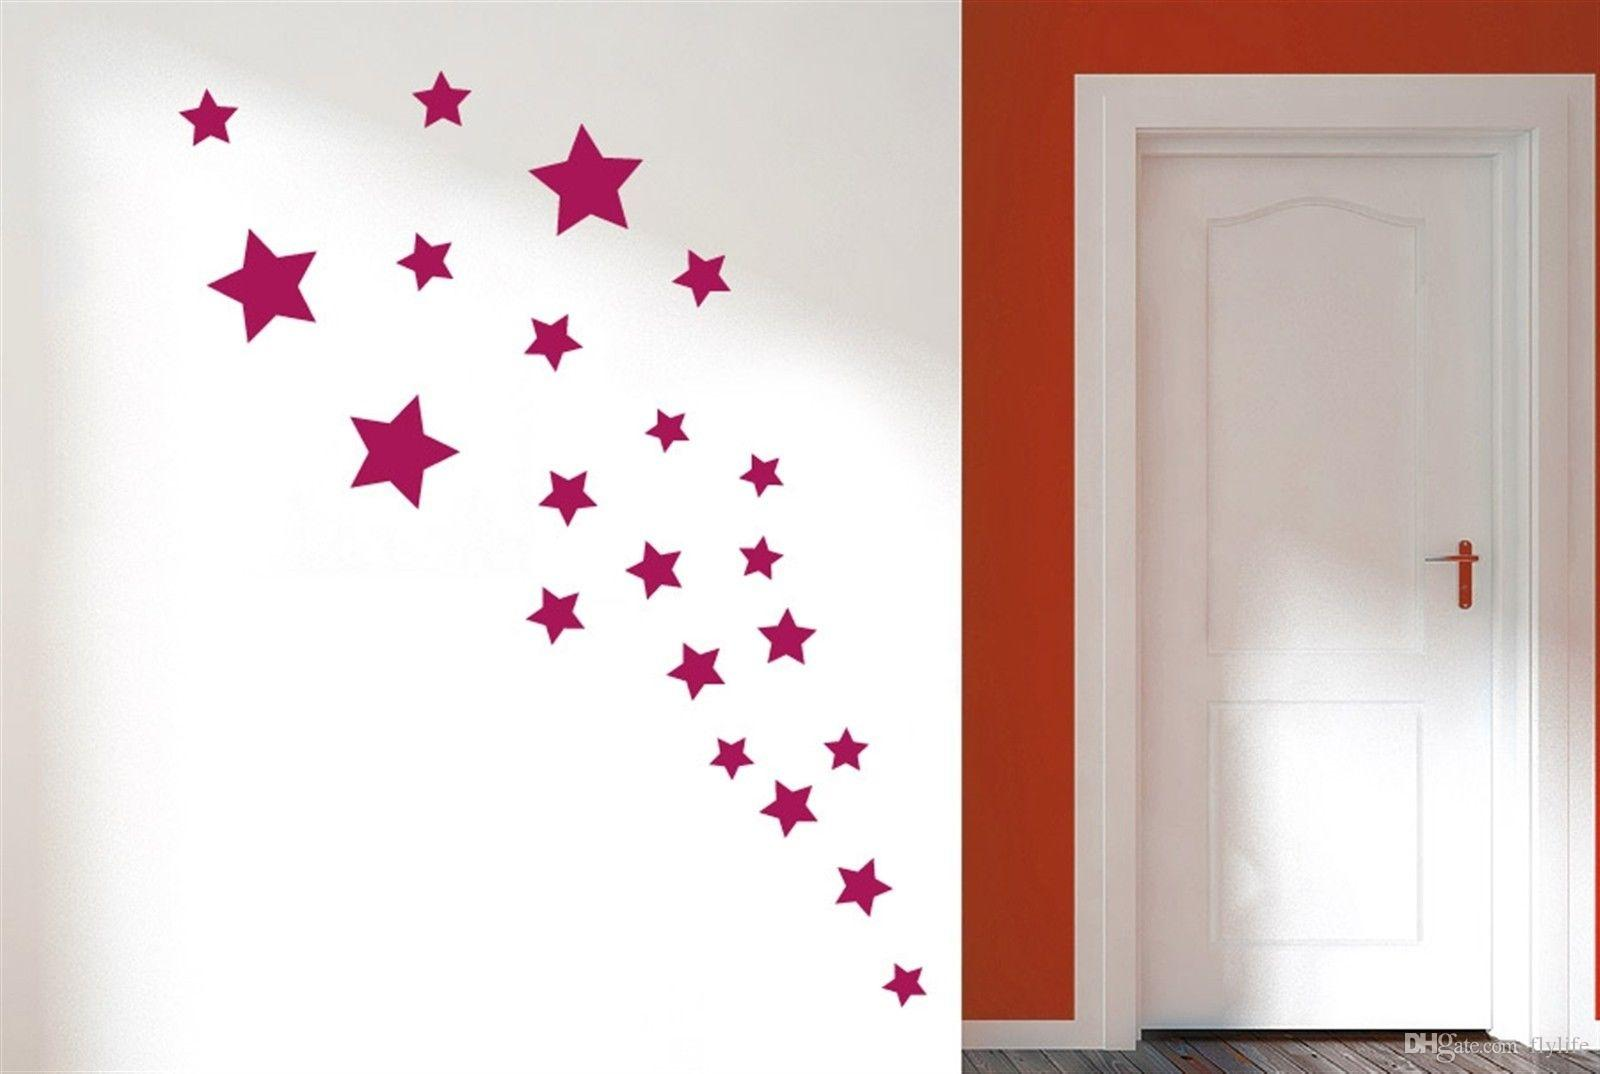 Decorative Wall Stickers removable various color stars decorative wall stickers vinyl wall